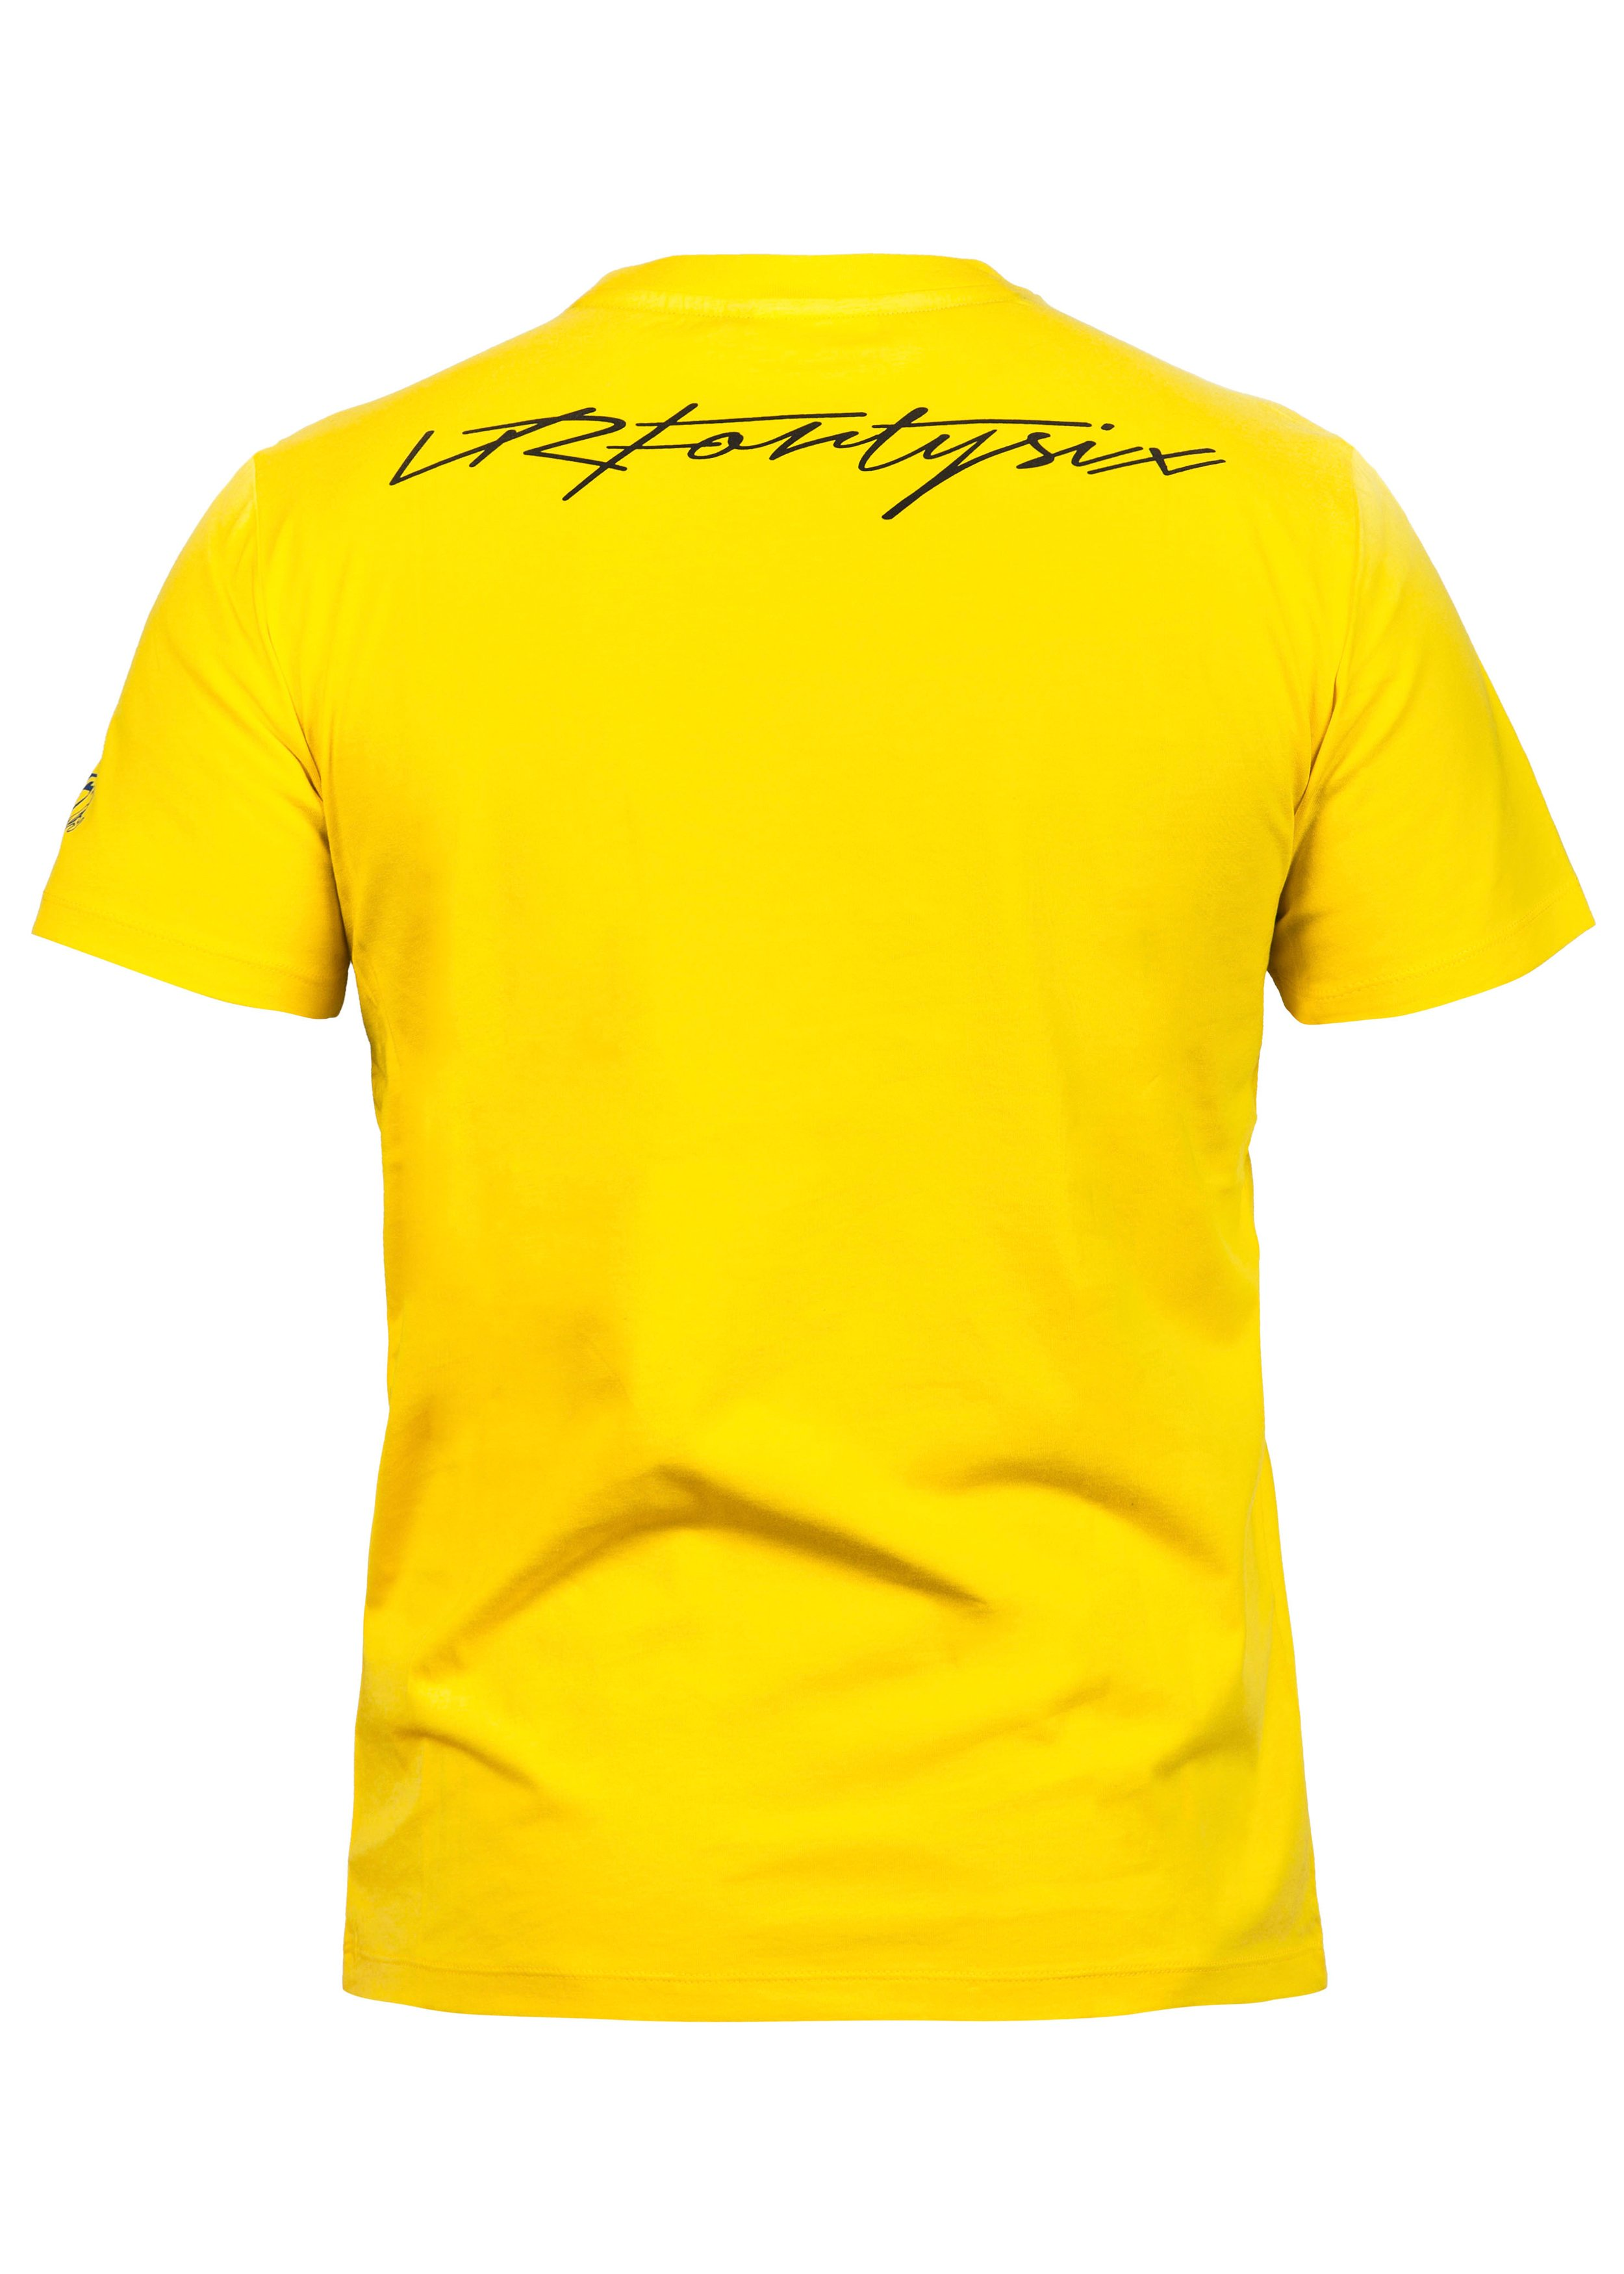 vr 46 valentino rossi yellow herren t shirt vr204201. Black Bedroom Furniture Sets. Home Design Ideas